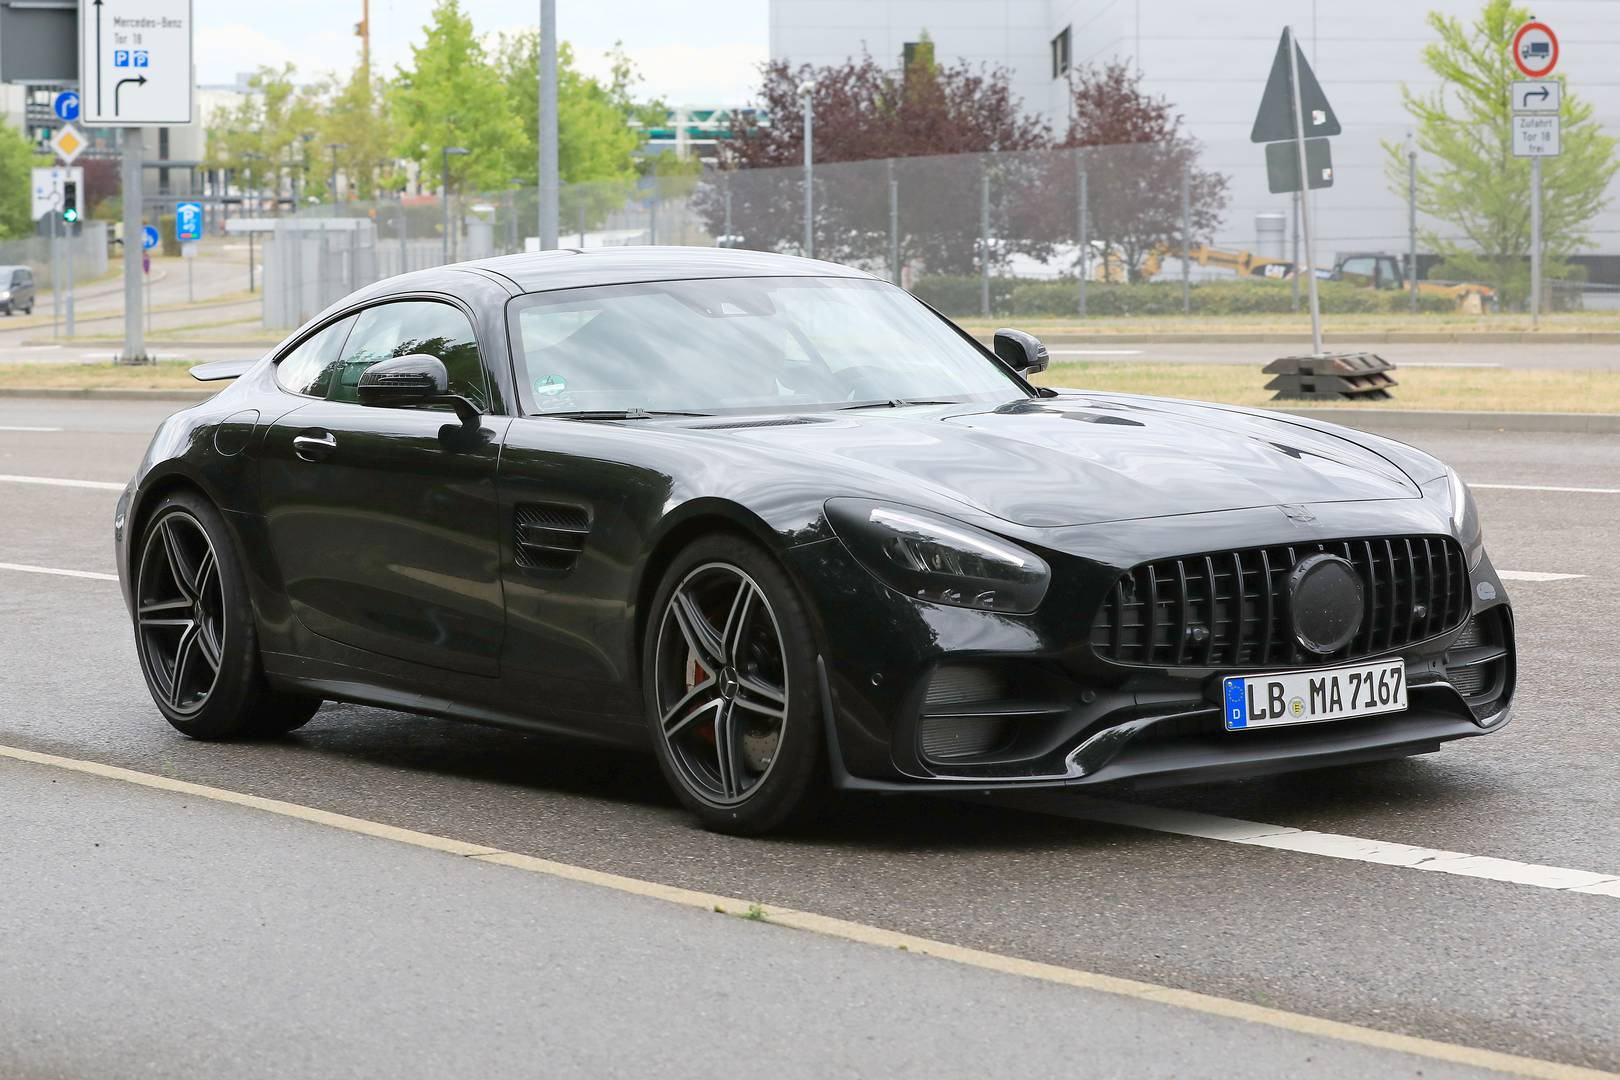 Amg Gt 2019 Mercedes Amg Gt Facelift First Spy Shots Gtspirit